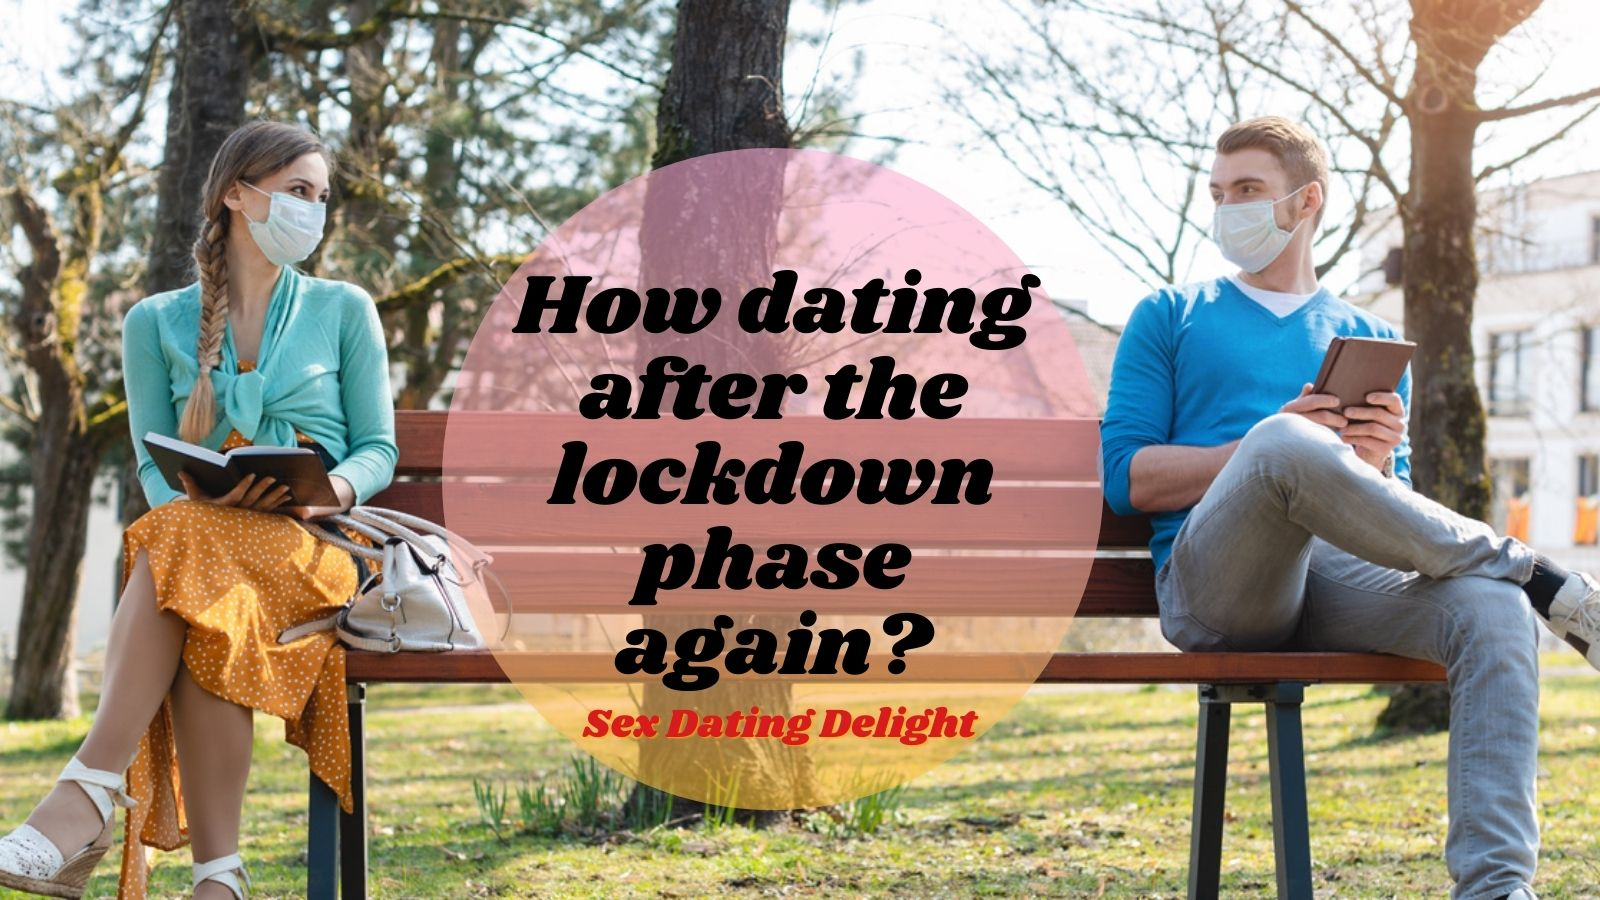 How dating after the lockdown phase again?